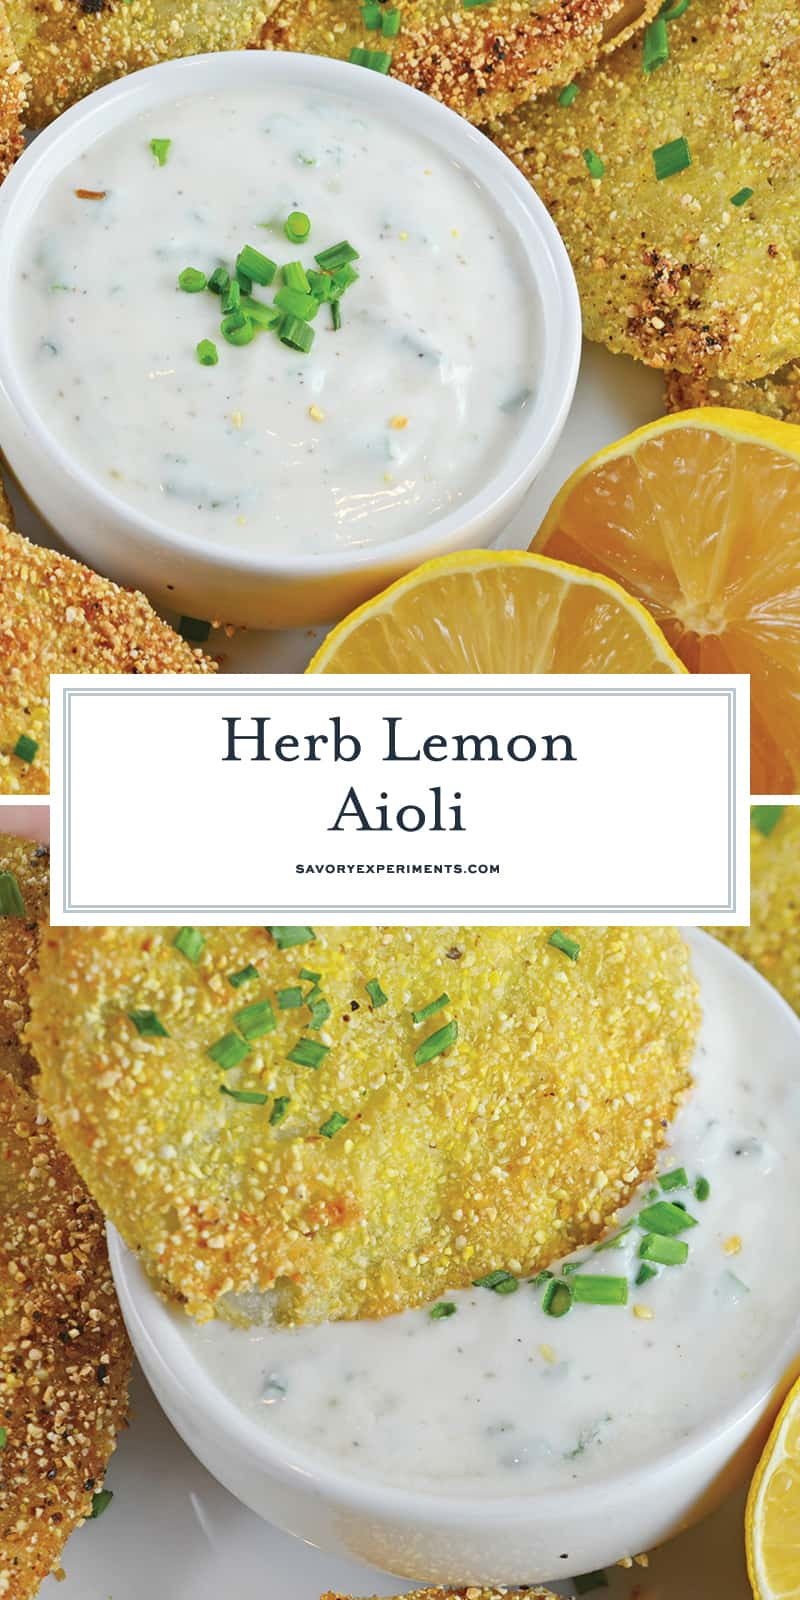 Herb Lemon Aioli is a delicious condiment perfect for sandwiches, as a dipping sauce and even as a marinade! #aiolirecipe #dippingsauce www.savoryexperiments.com